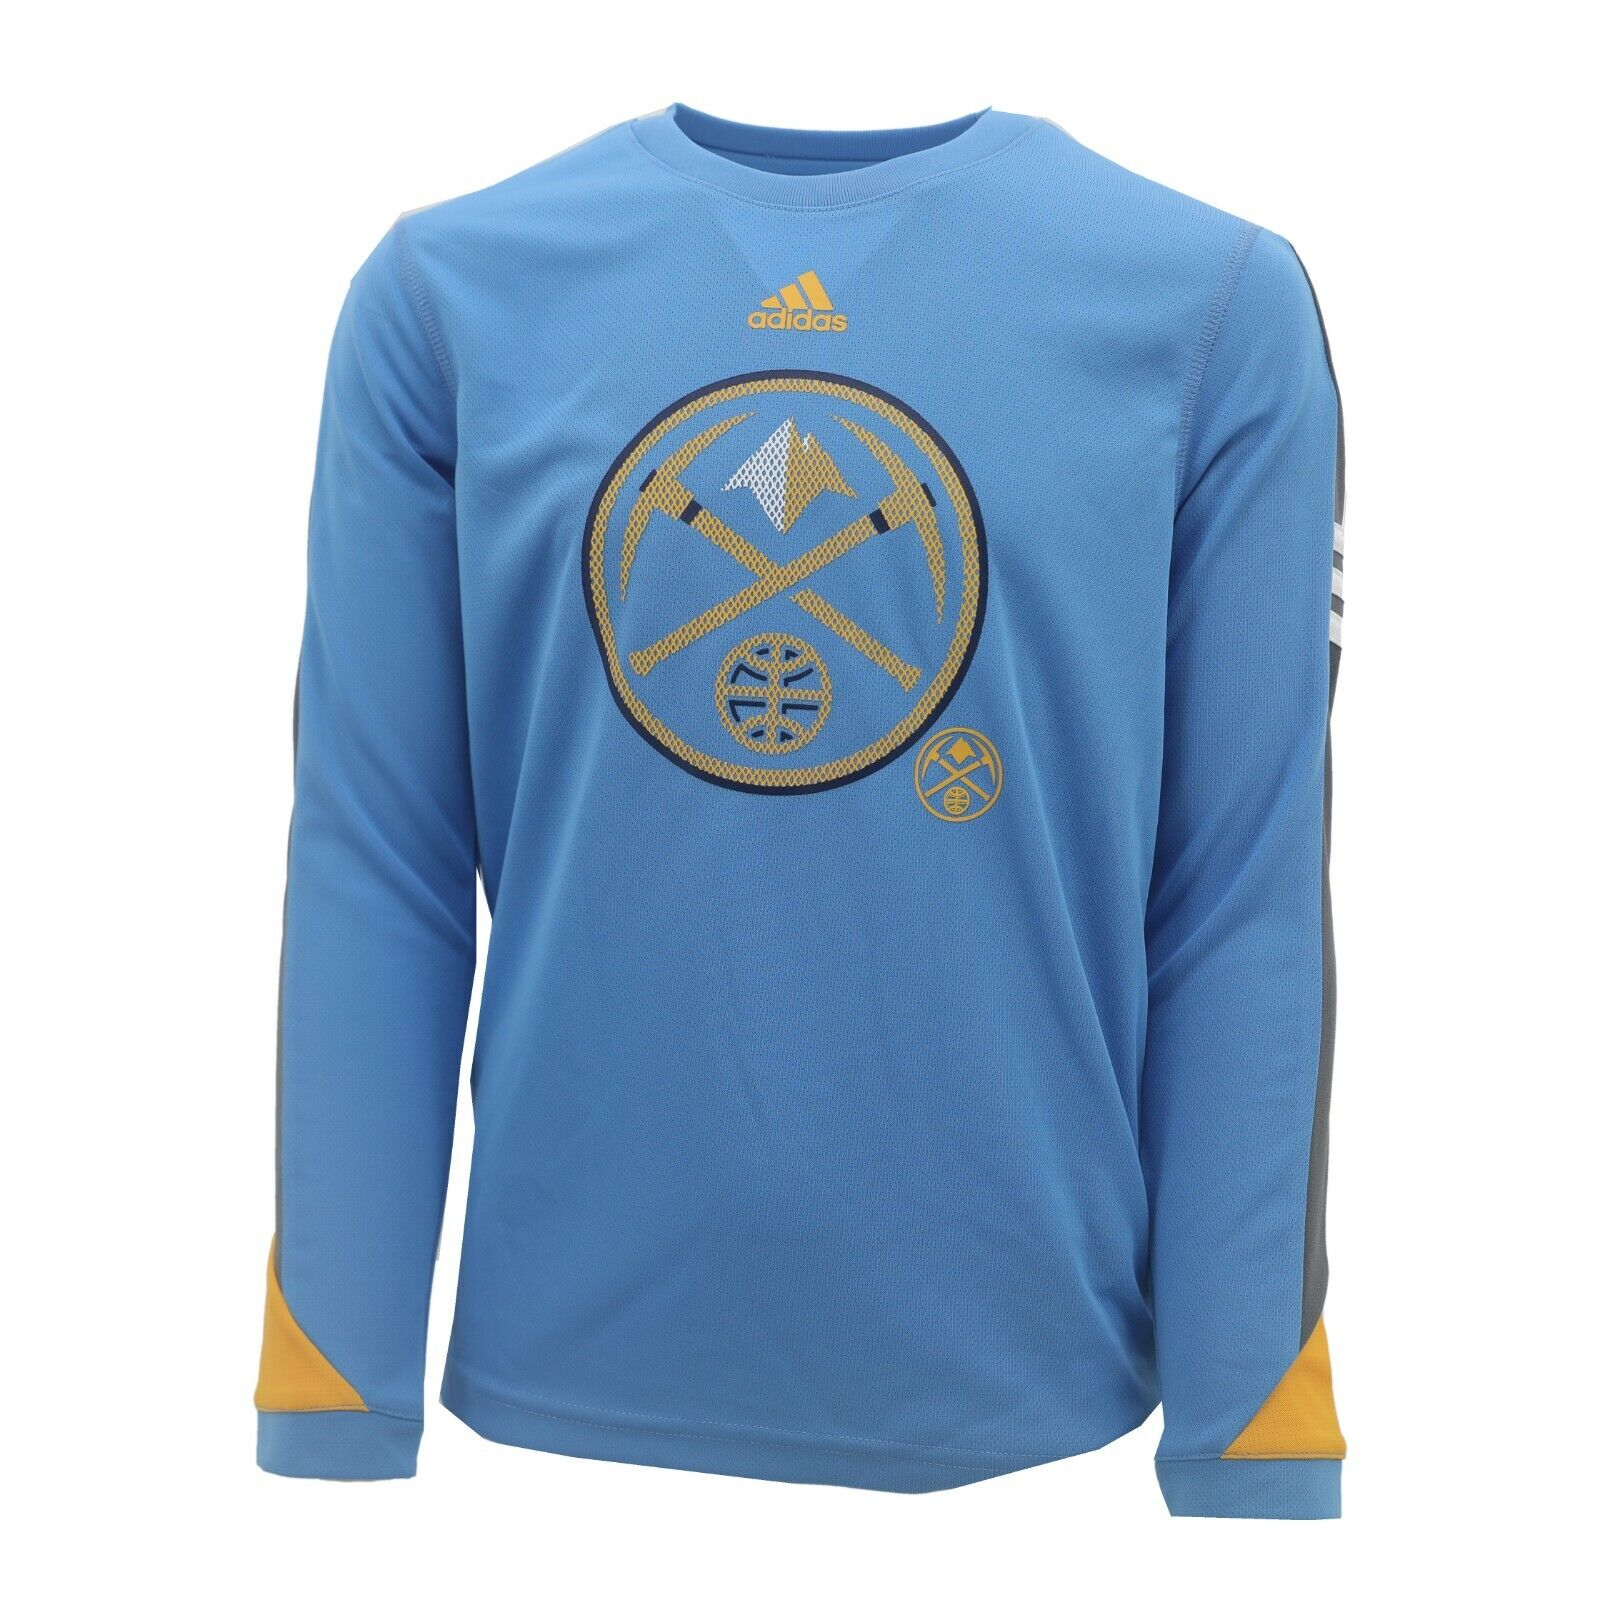 promo code bc1a5 fd1b8 Details about Denver Nuggets NBA Adidas Kids Youth Size Long Sleeve Warm Up  Athletic Shirt New